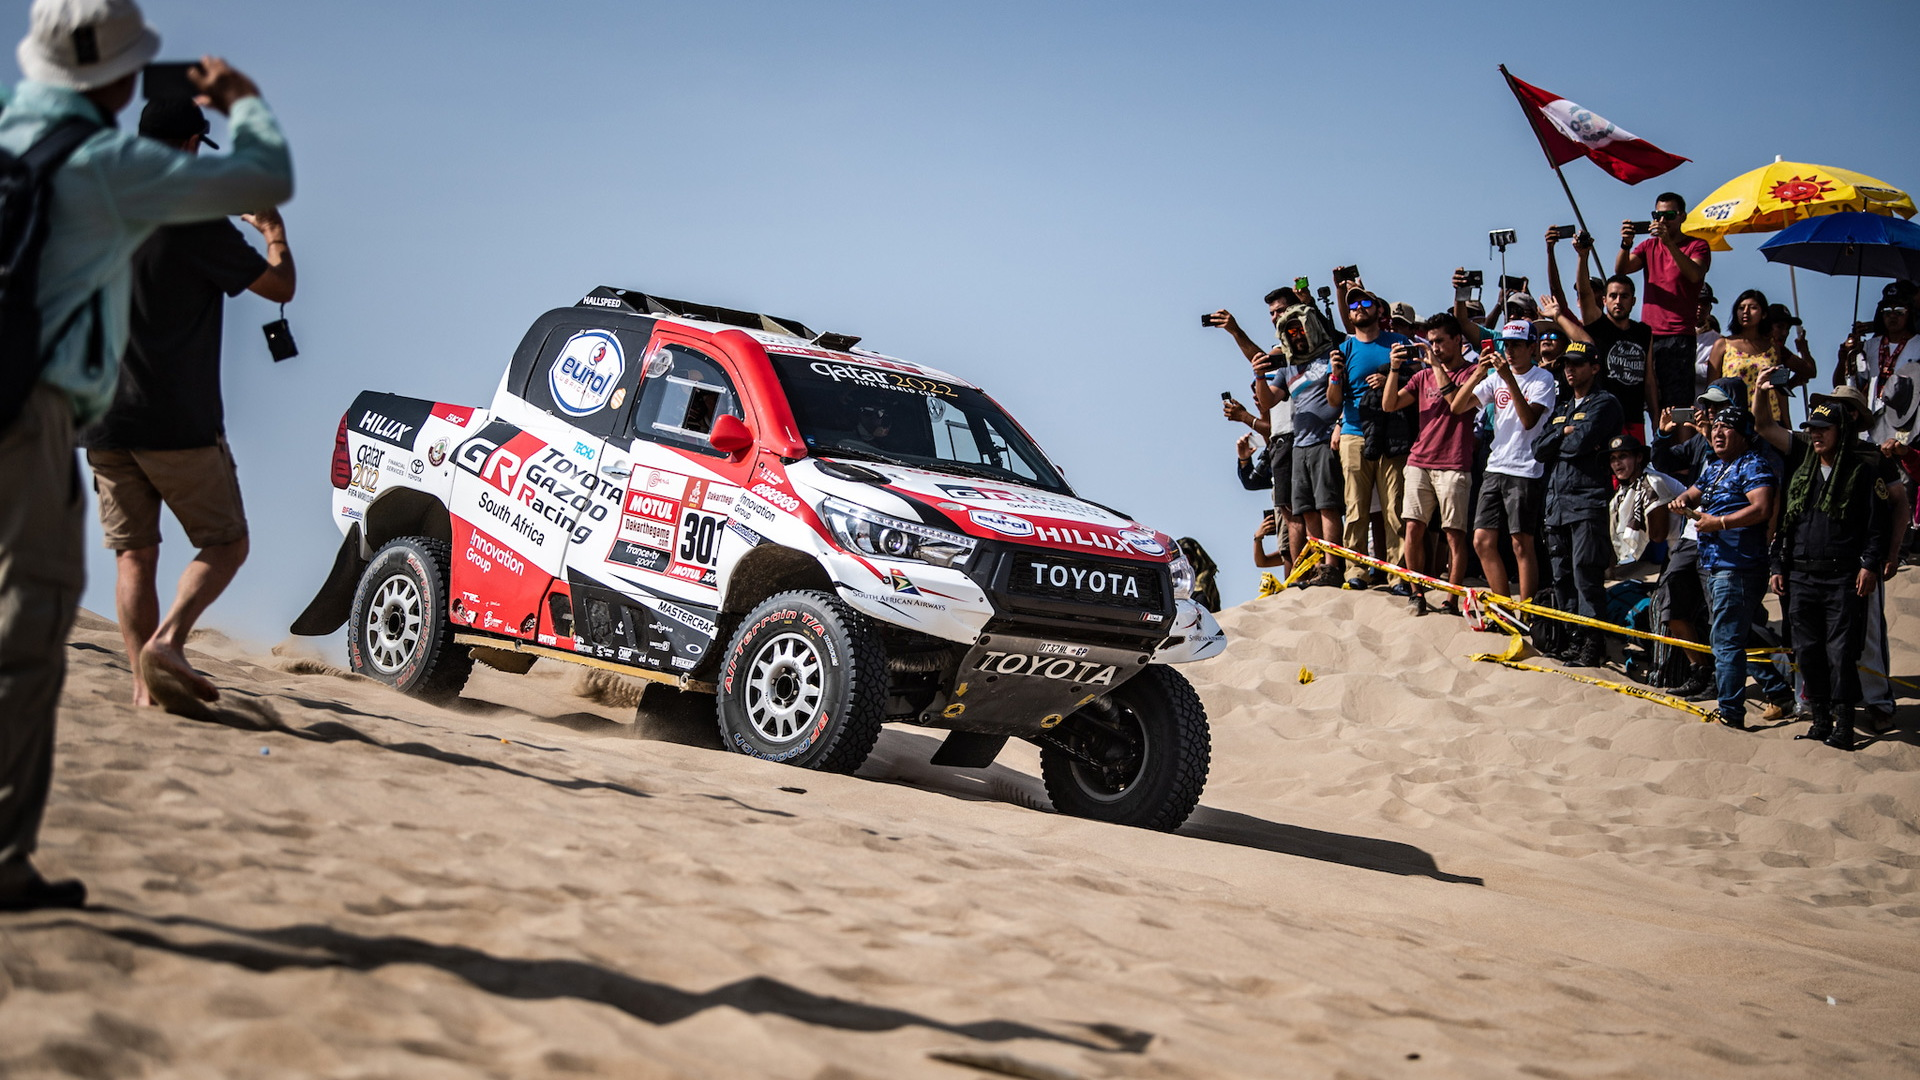 Toyota Hilux at the 2019 Dakar rally